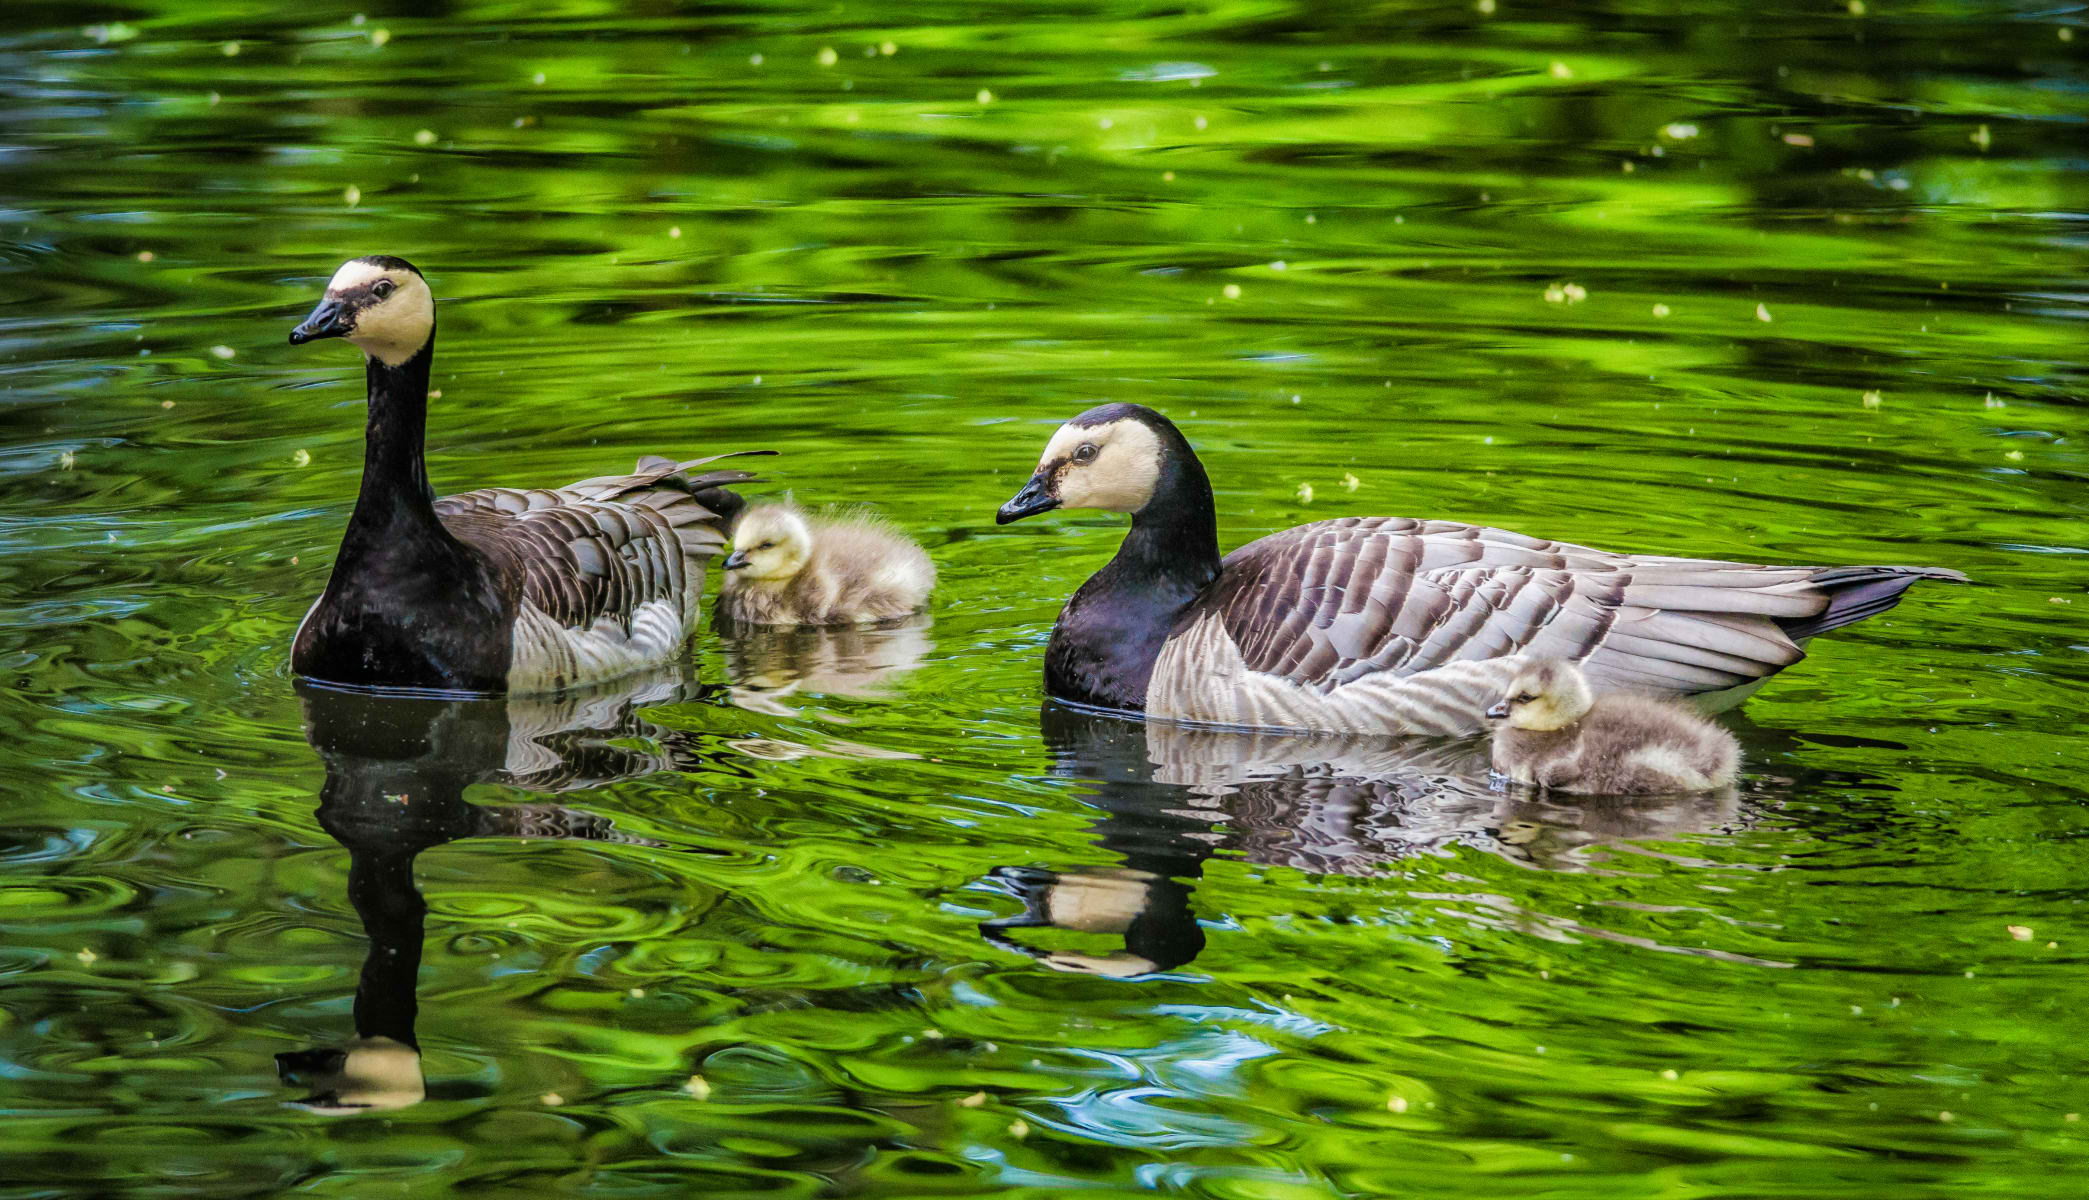 barnacle goose family swimming in luminescent green